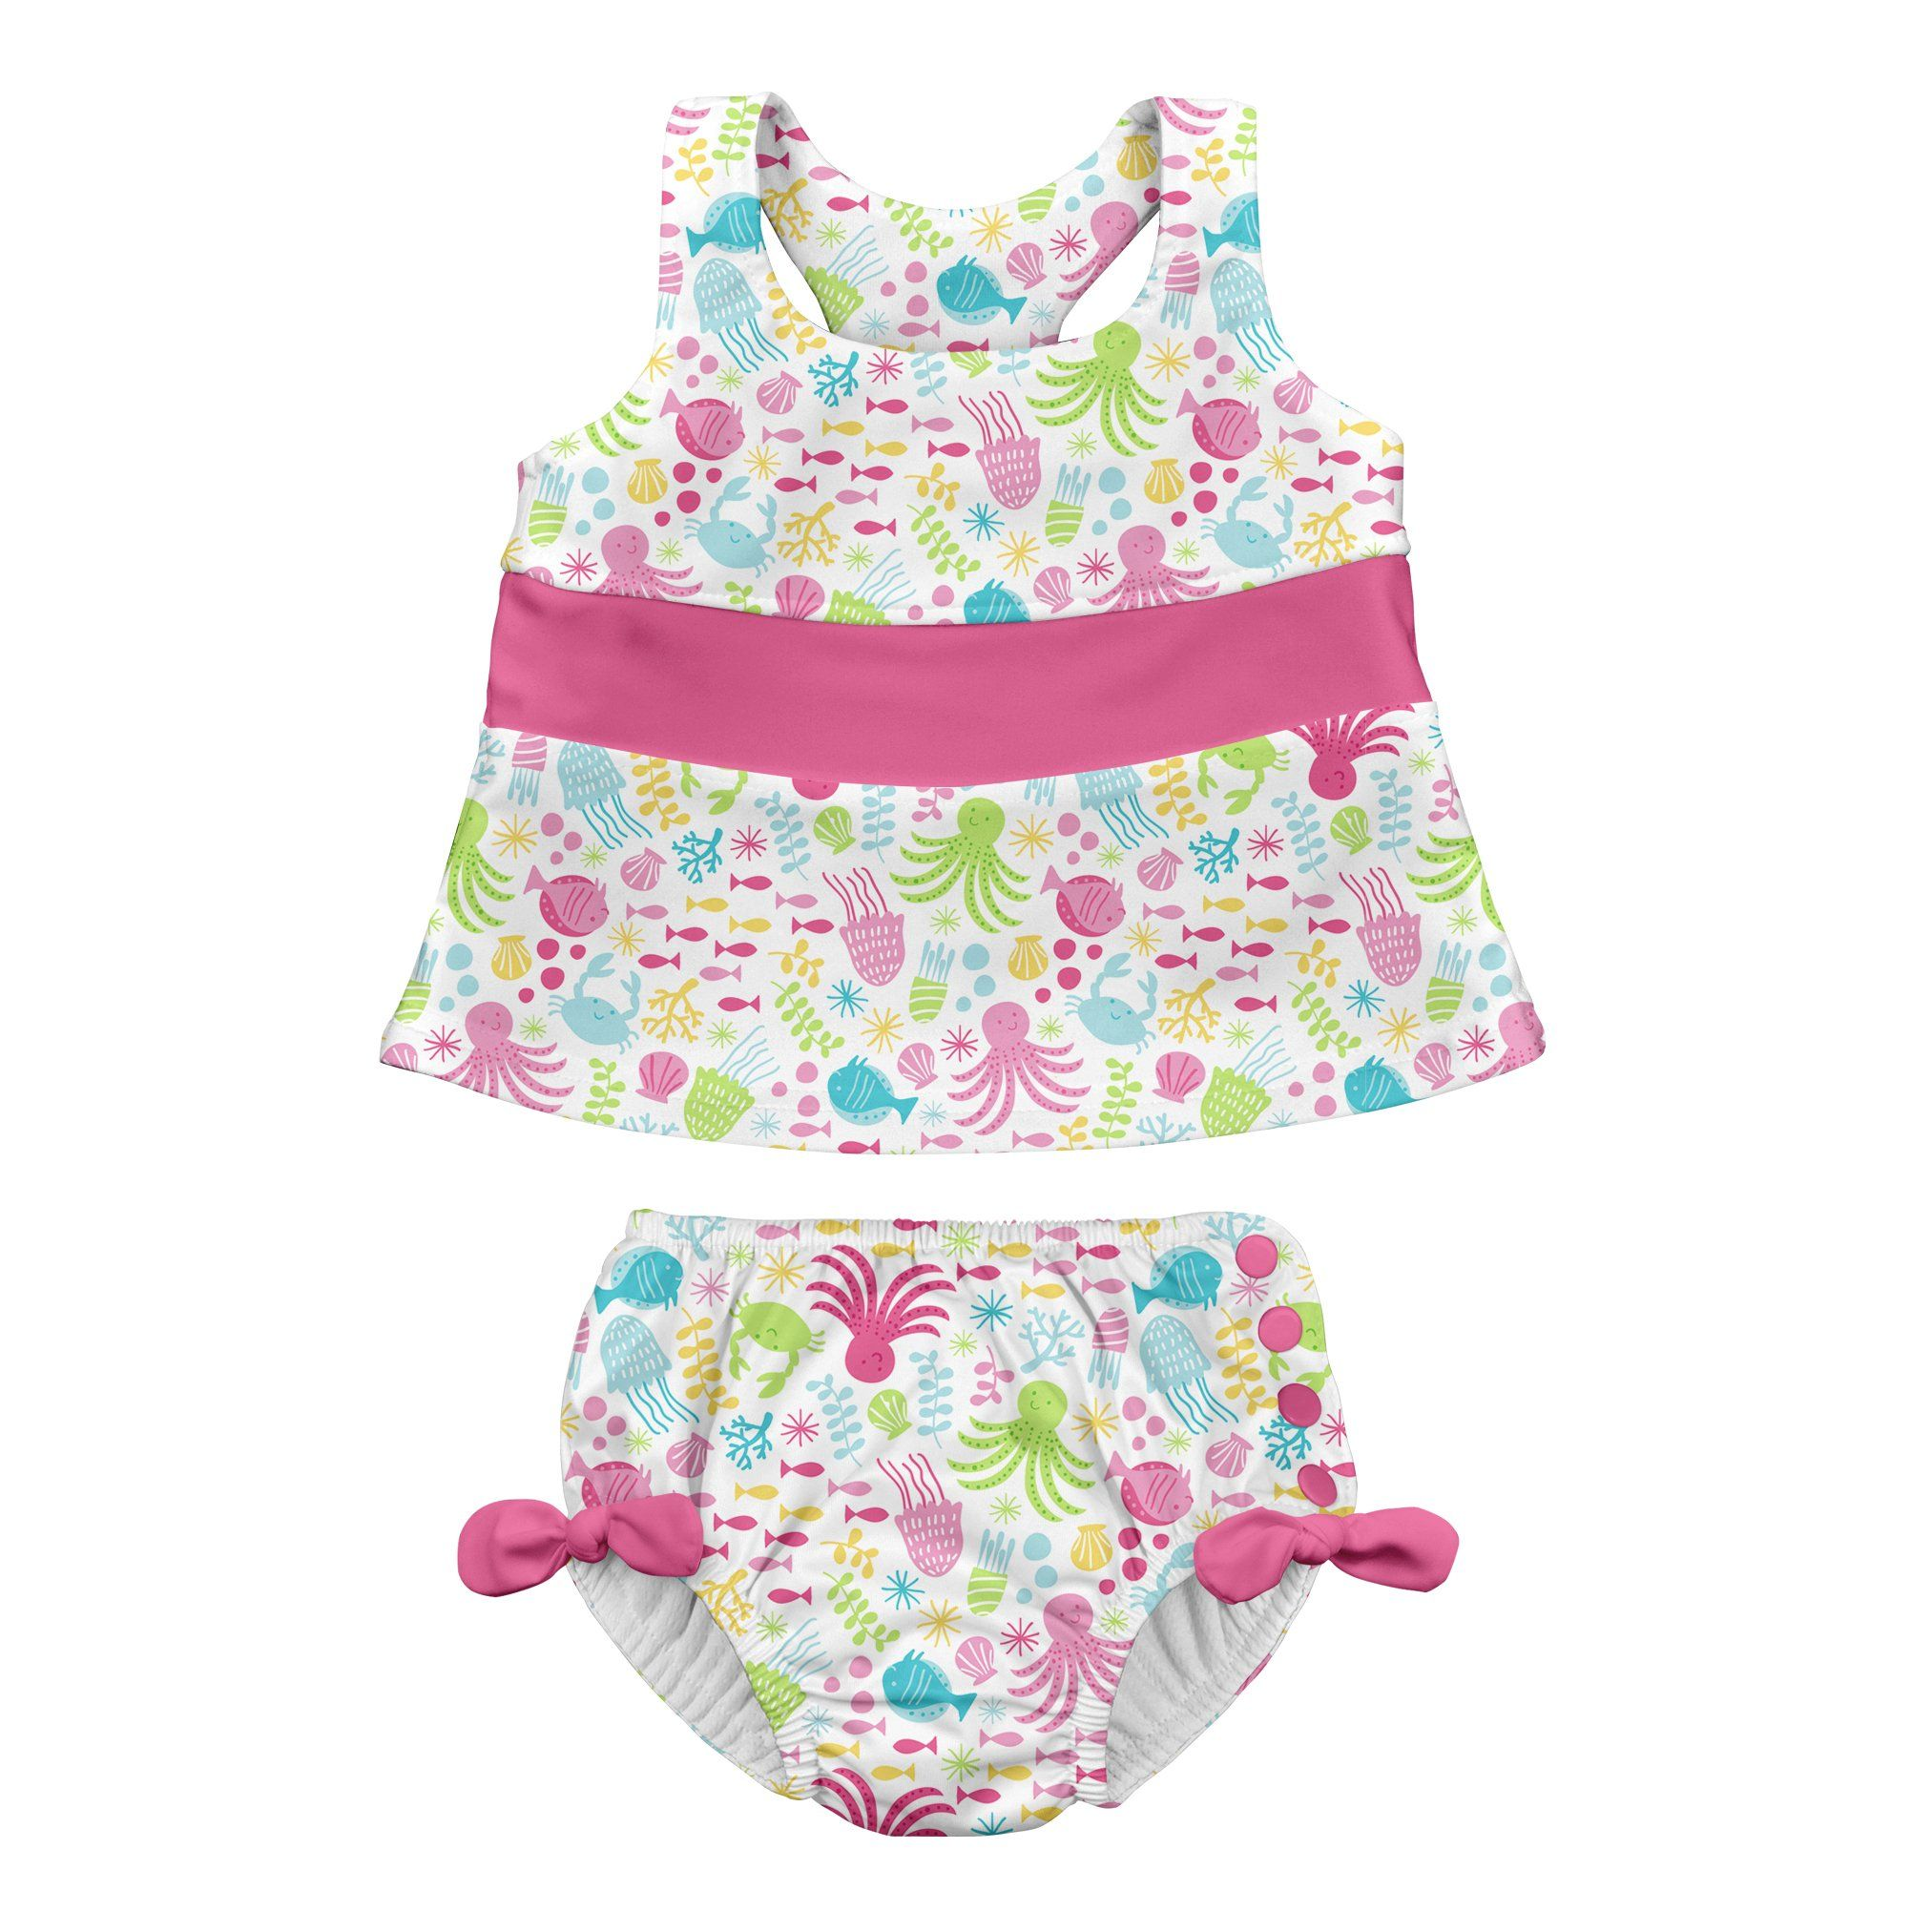 2. I play. by green sprouts, Baby Tankini Set